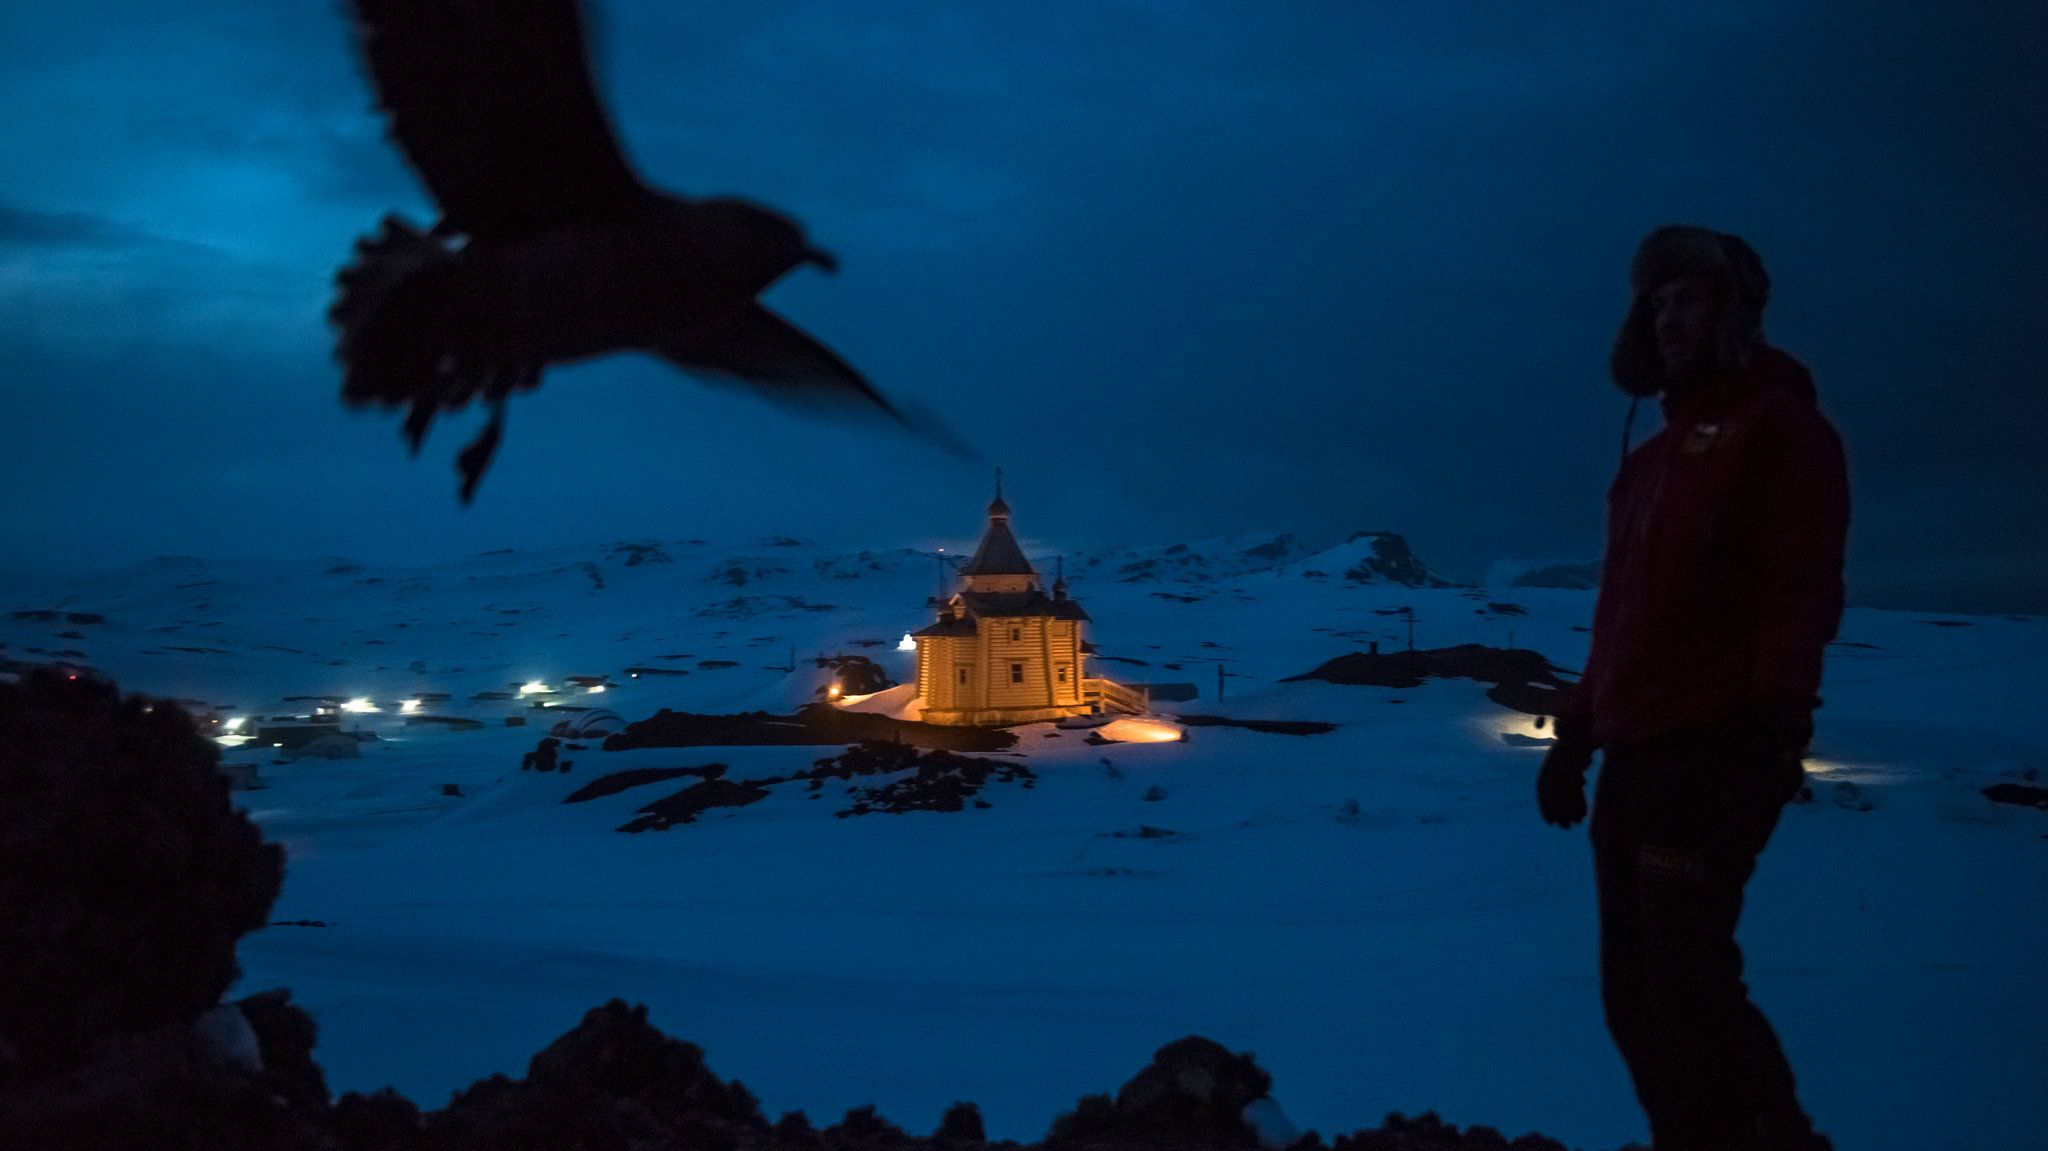 Countries Rush For Upper Hand In Antarctica World Press World Images Photo